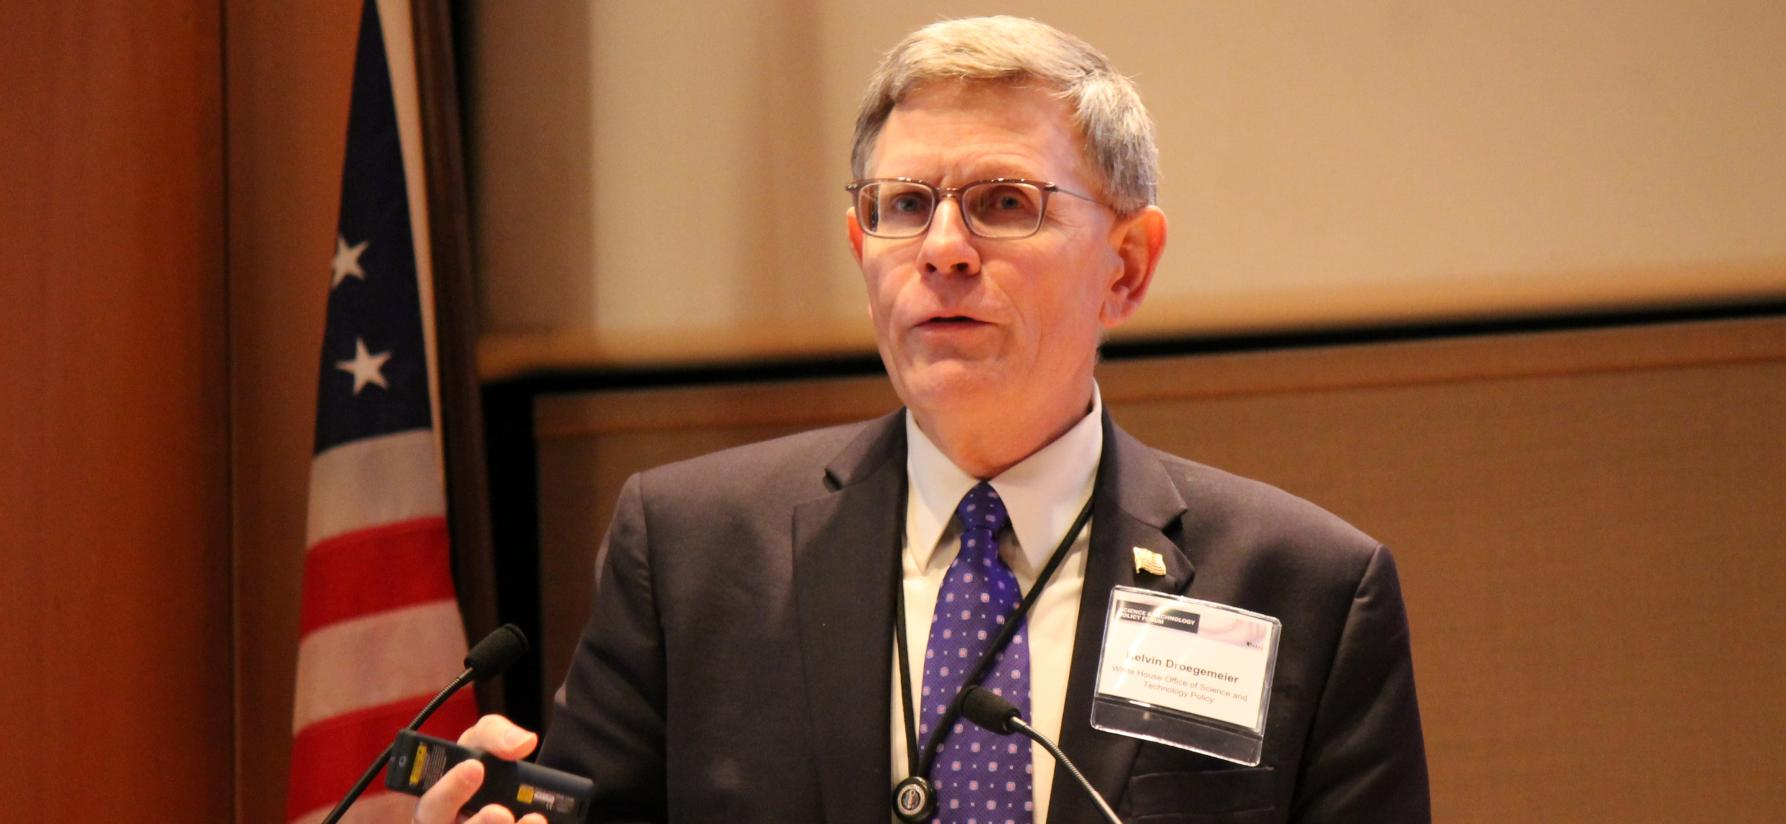 Office of Science and Technology Policy Director Kelvin Droegemeier at the AAAS Forum on S&T Policy. | Kat Song